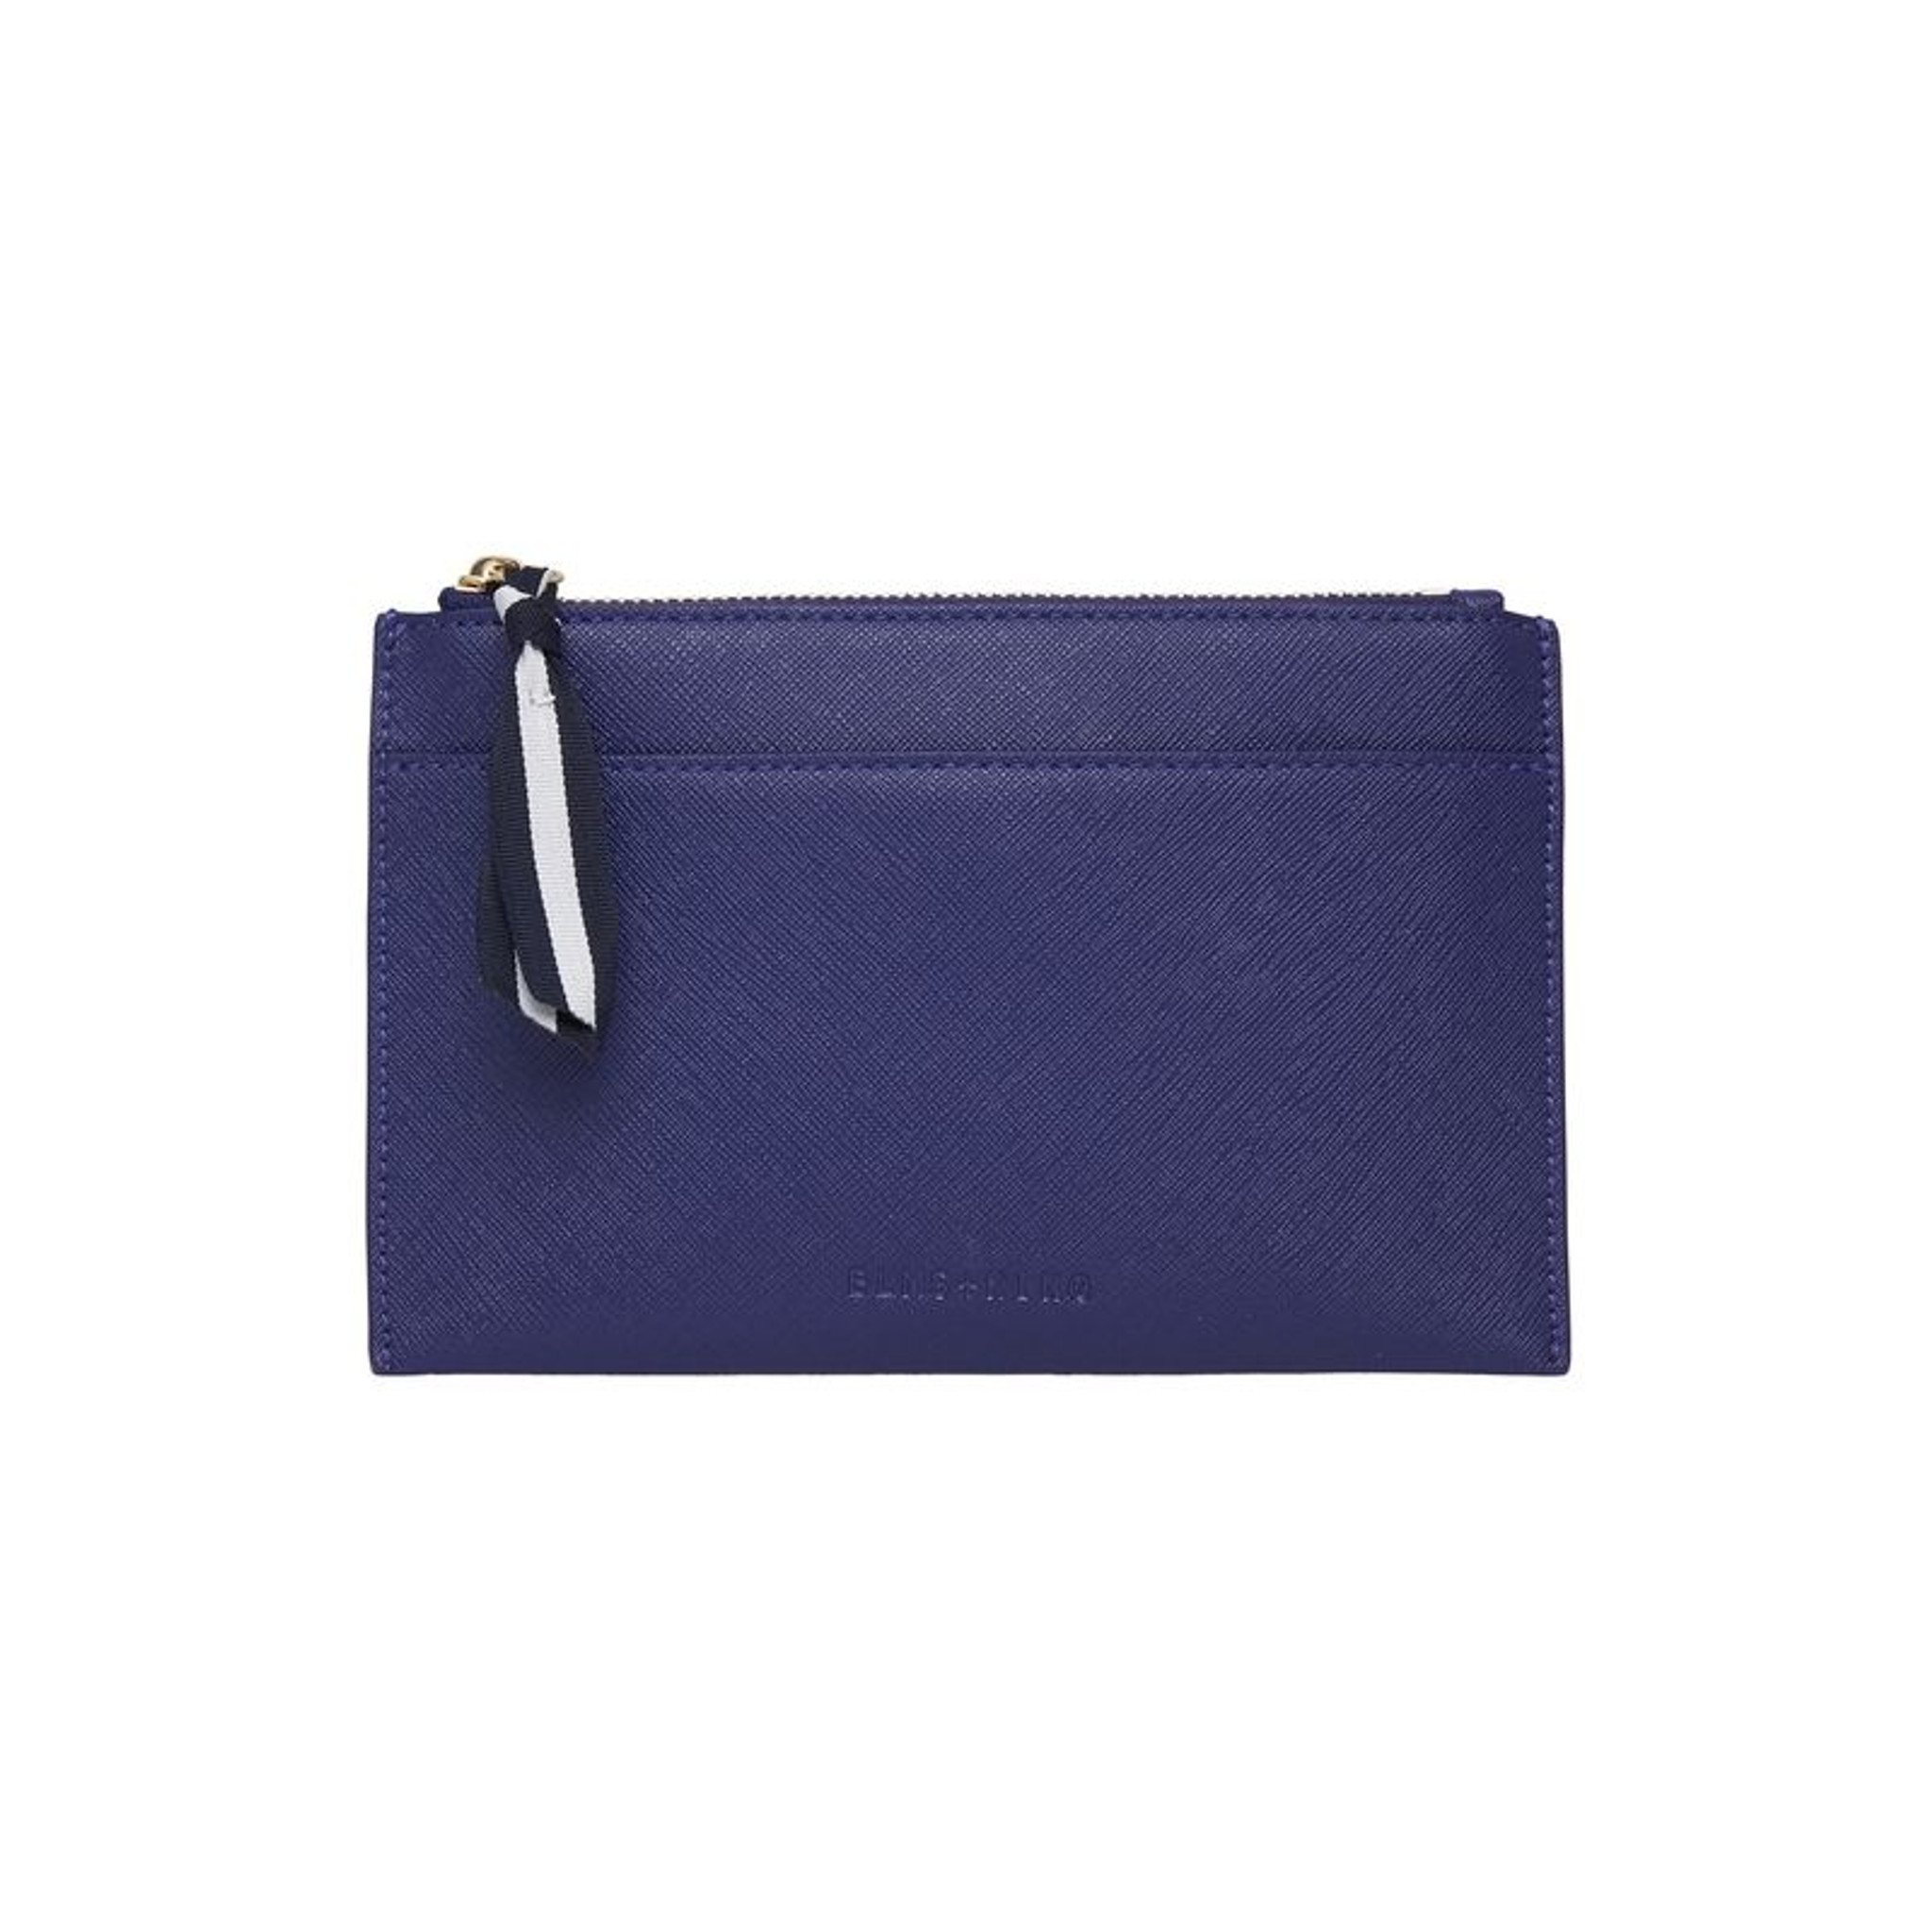 New York Coin Purse navy by ELMS + KING